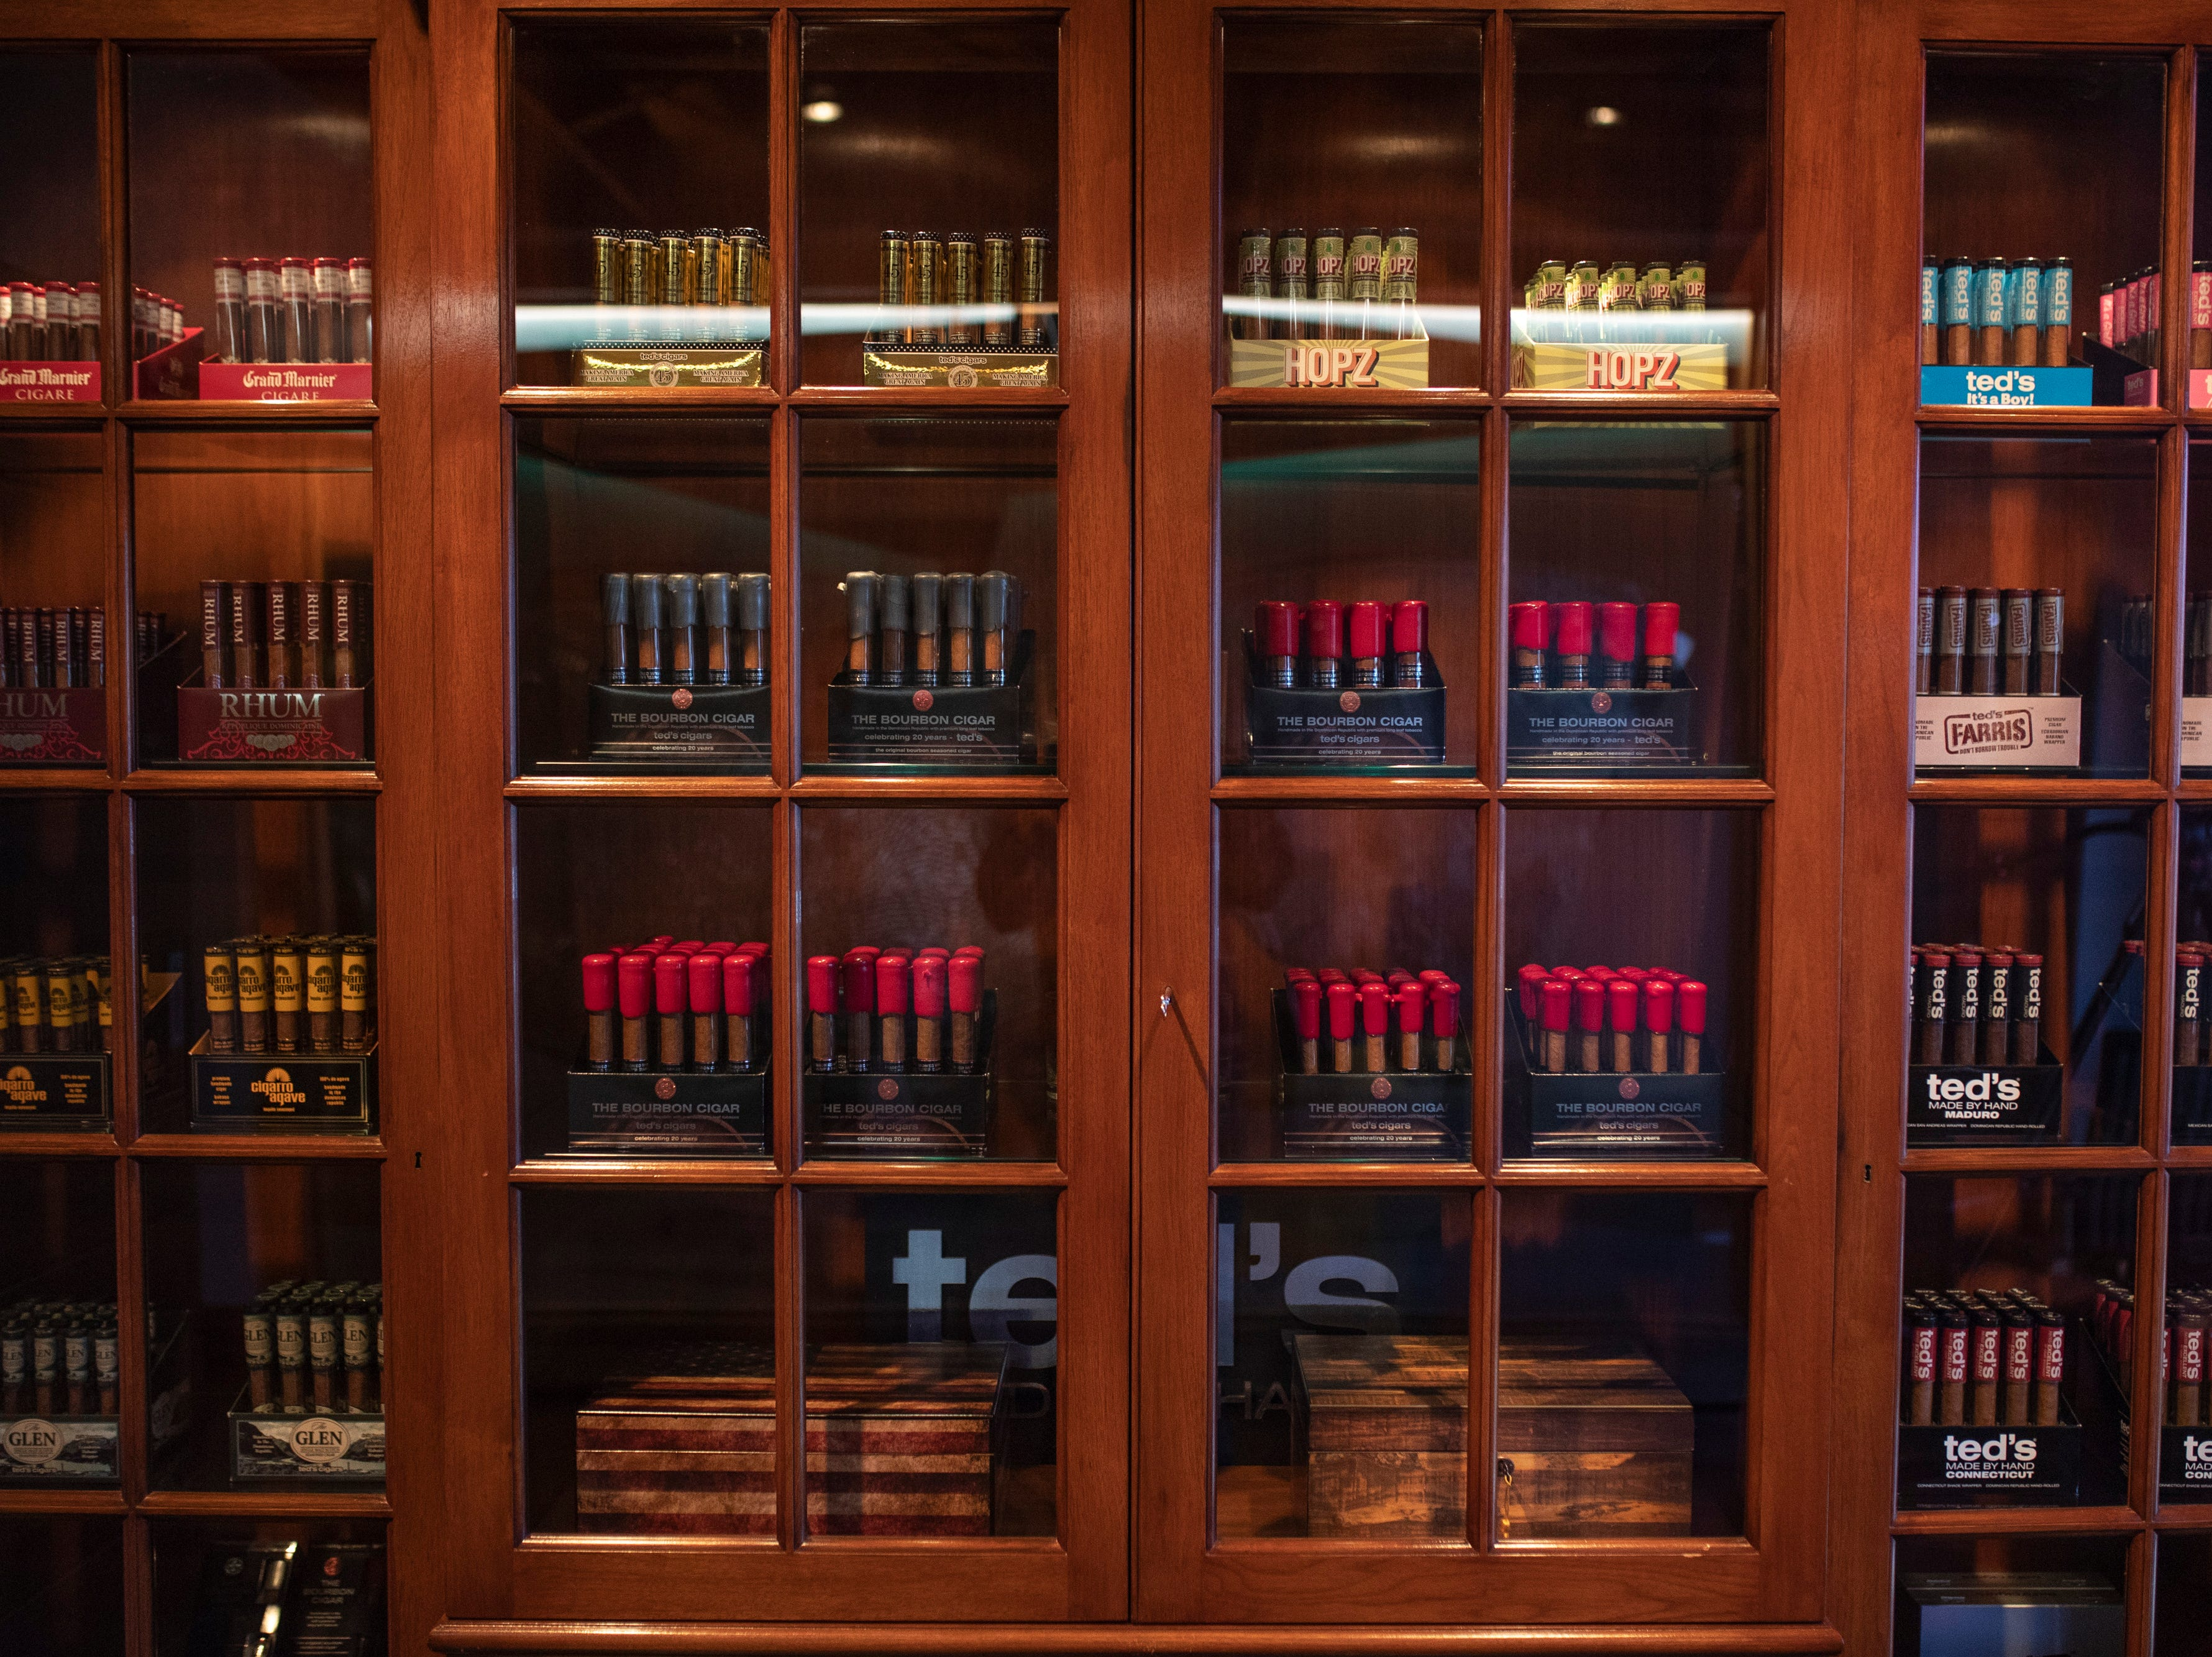 A case holds various types of flavored cigars made by Ted's Cigars in Louisville. Flavors range from rum to beer hops, from bourbon to agave. Jan. 10, 2019